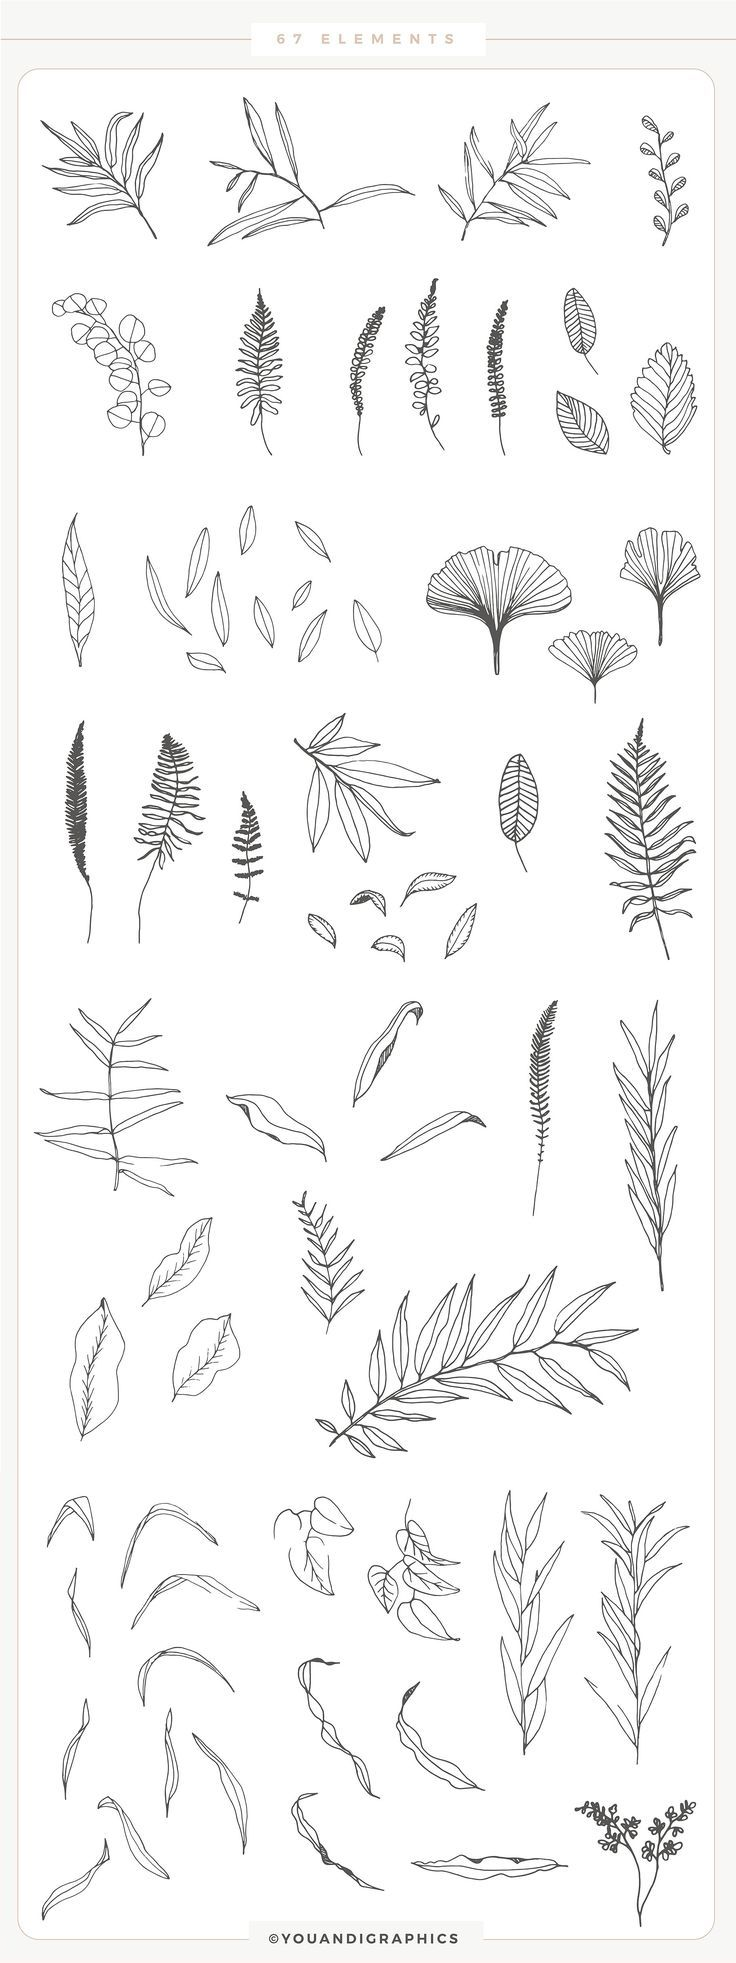 Romantic Leaves Collection by Youandigraphics on @creativemarket